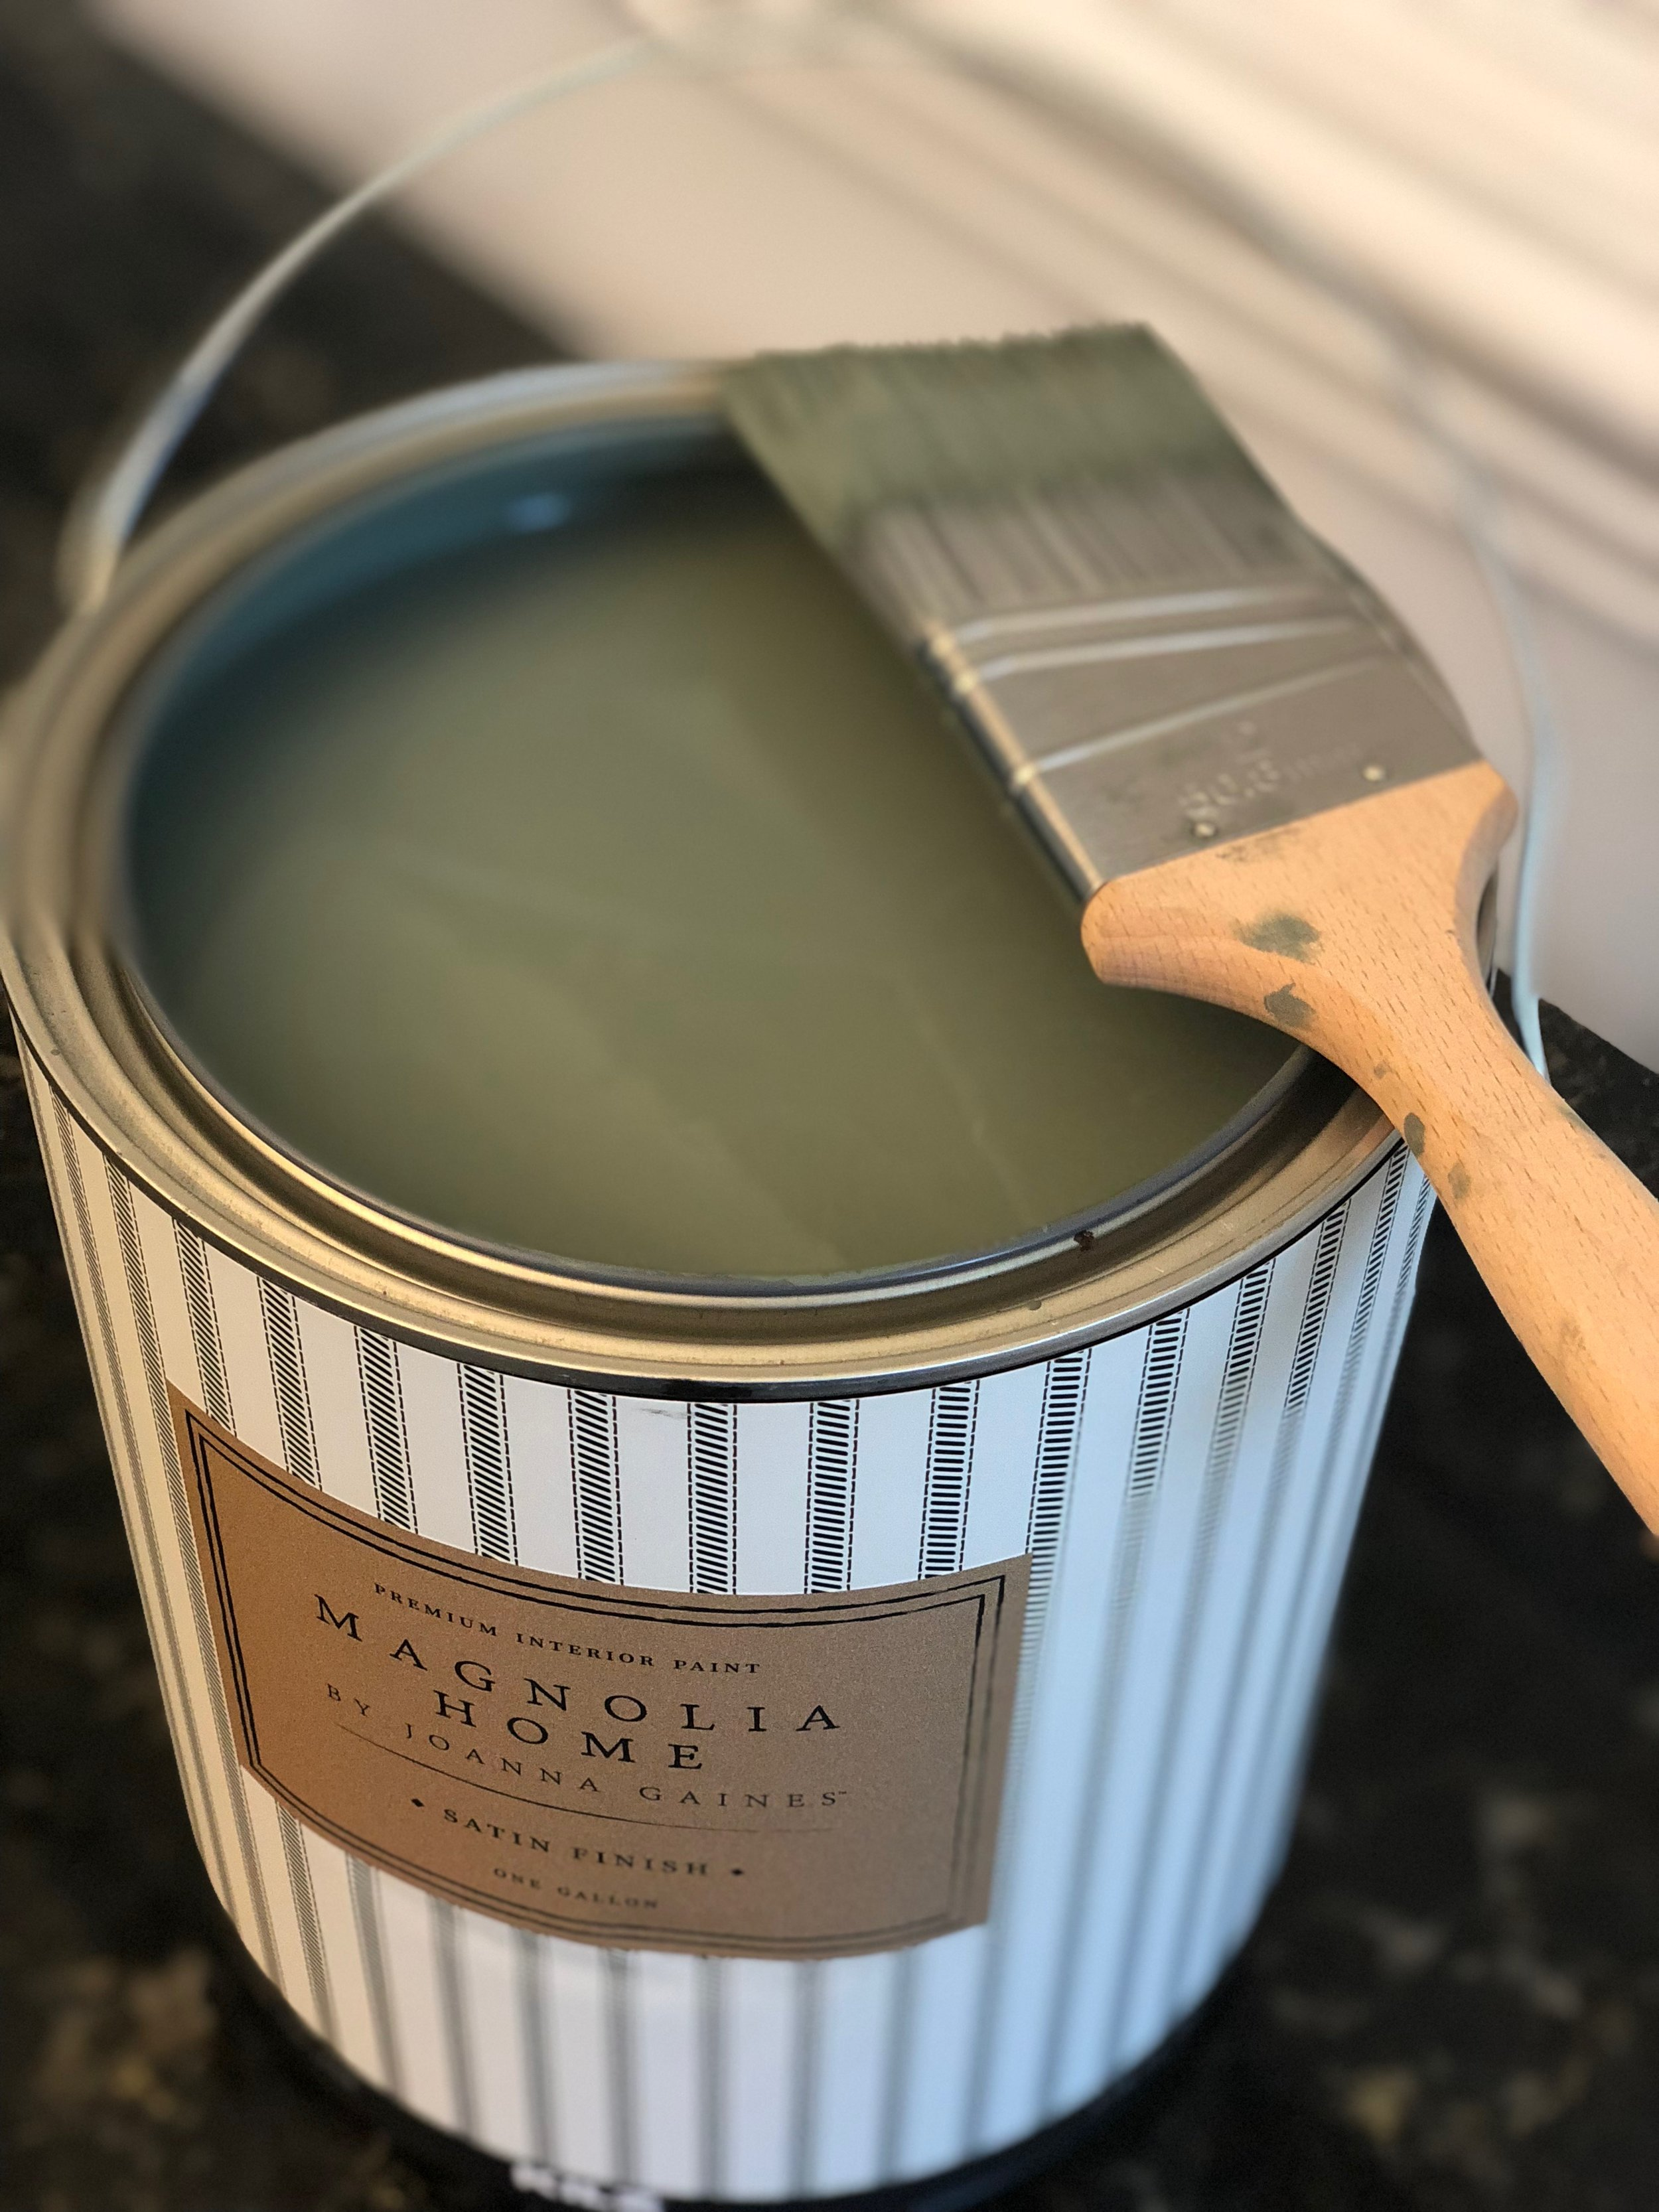 Magnolia Home in the color LUXE